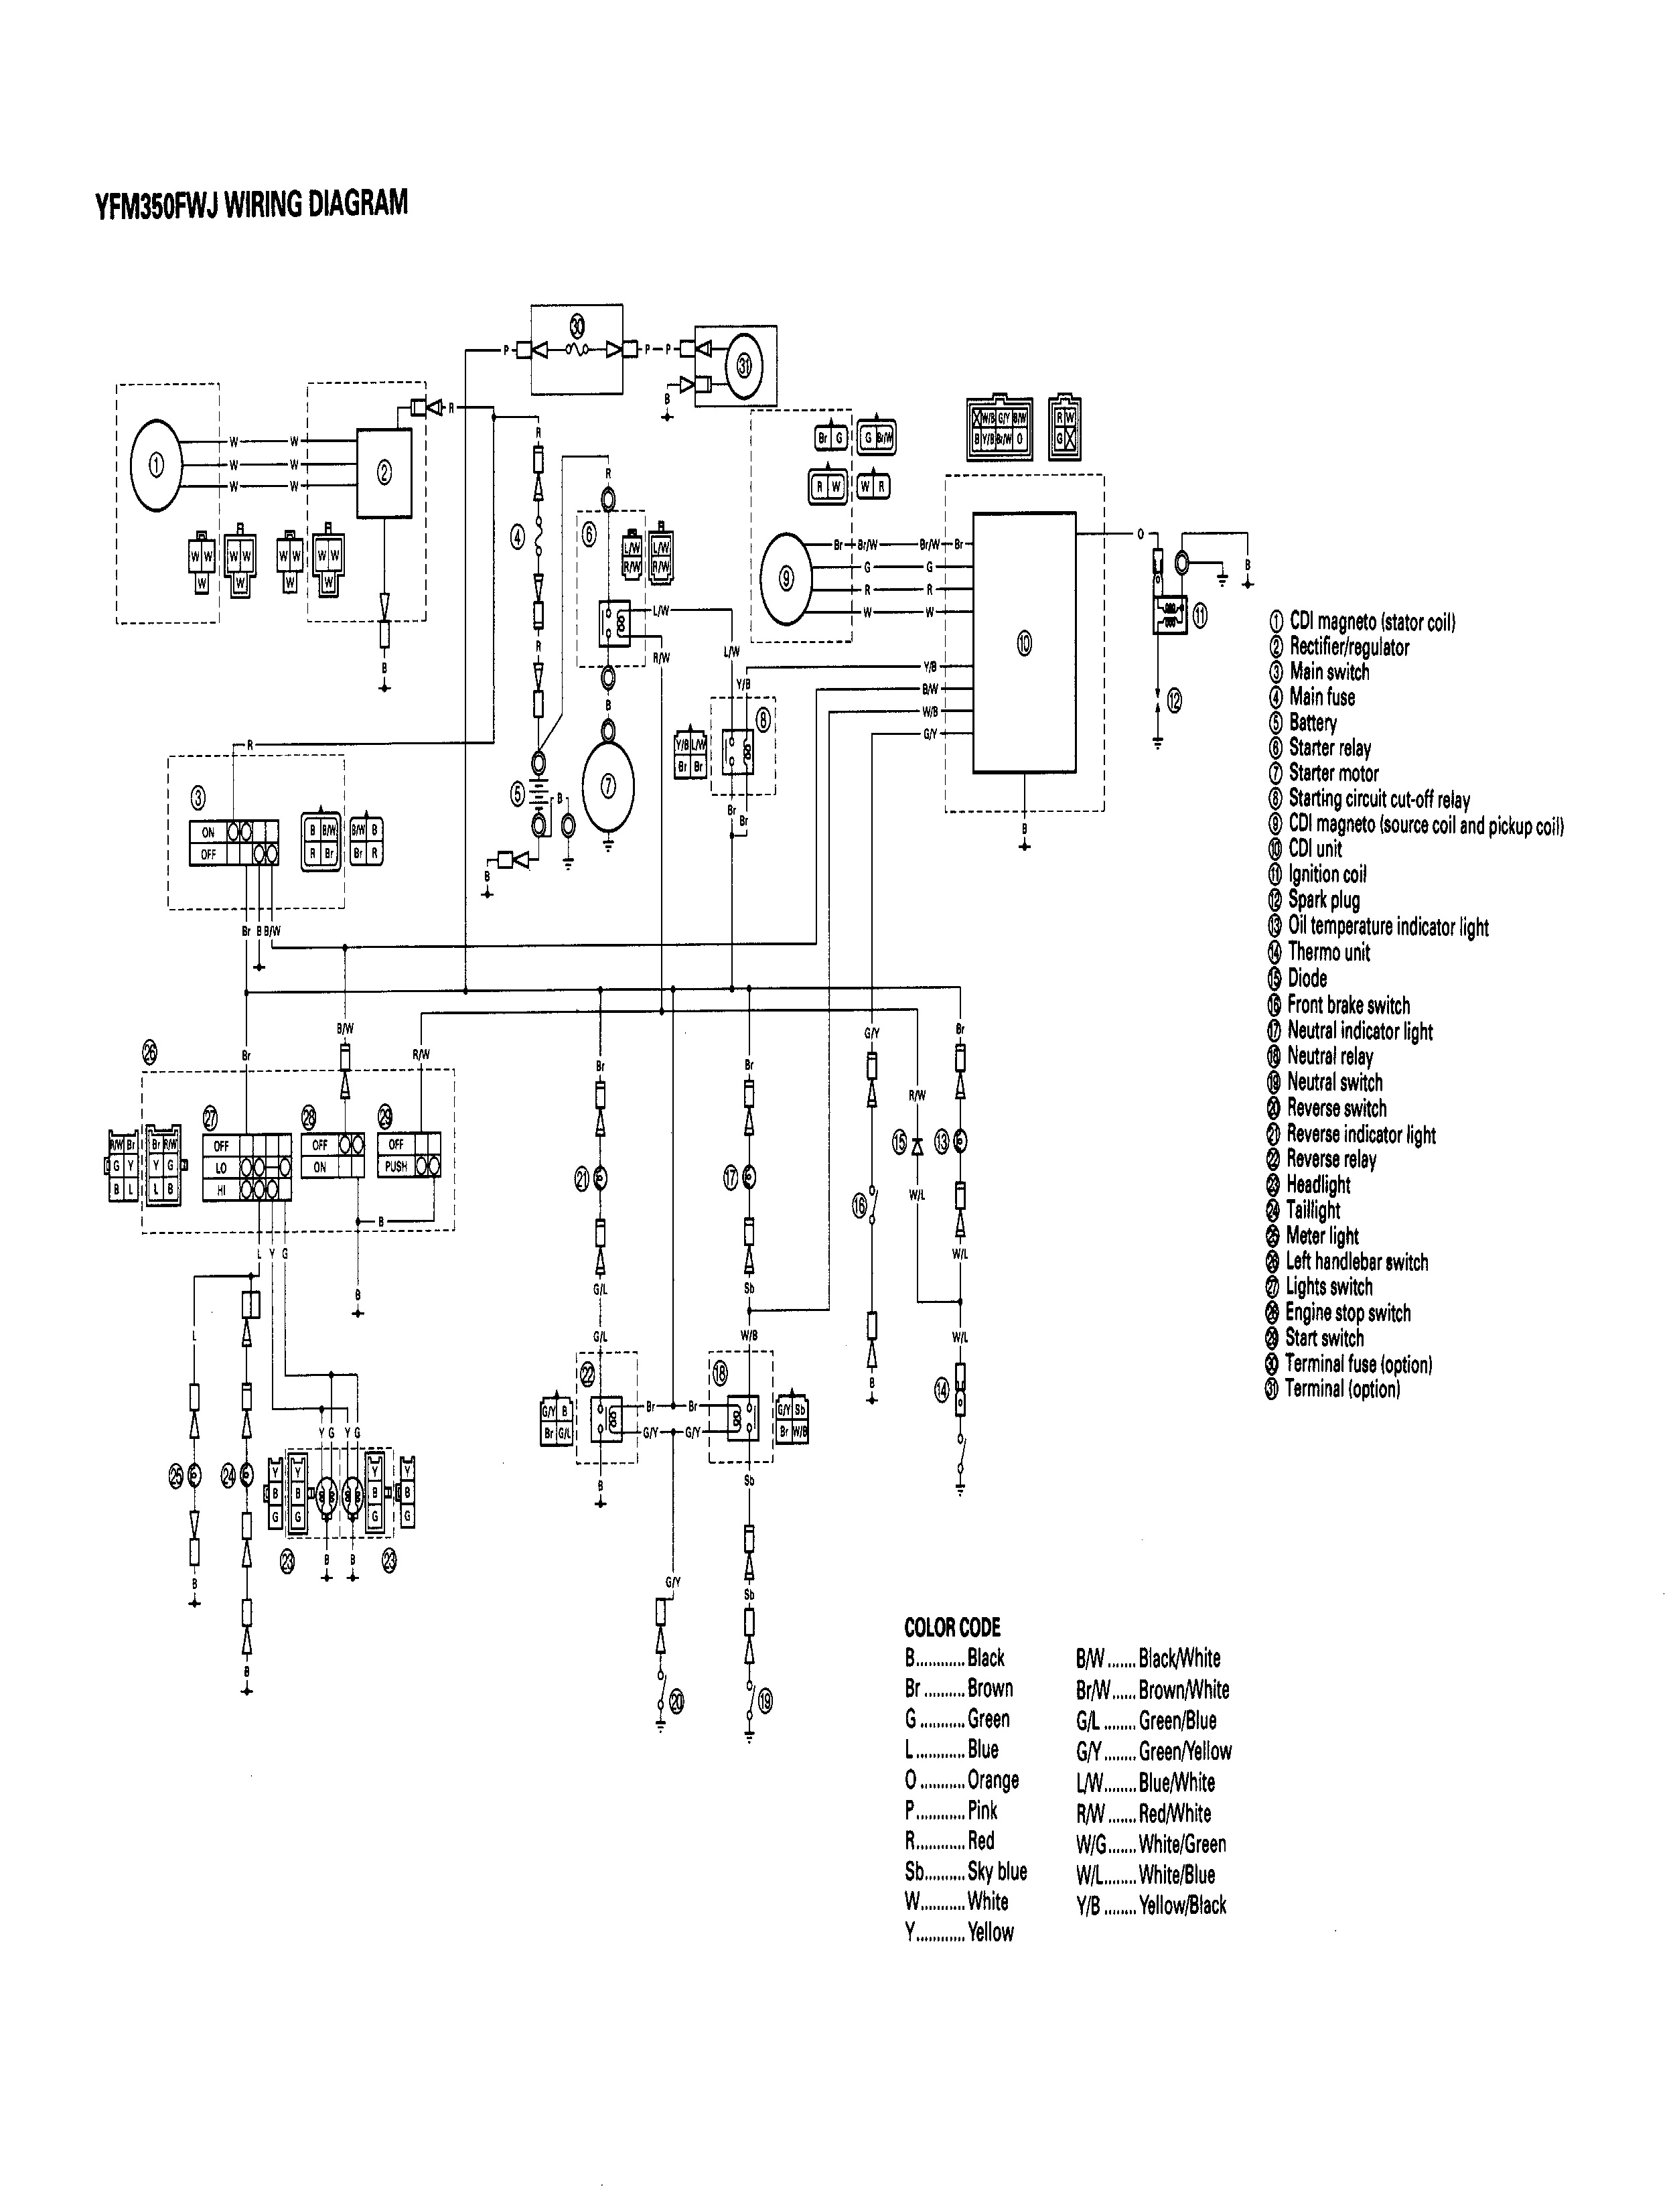 Big Bear Wiring Diagram | Wiring Diagram Viper Wiring Diagram on